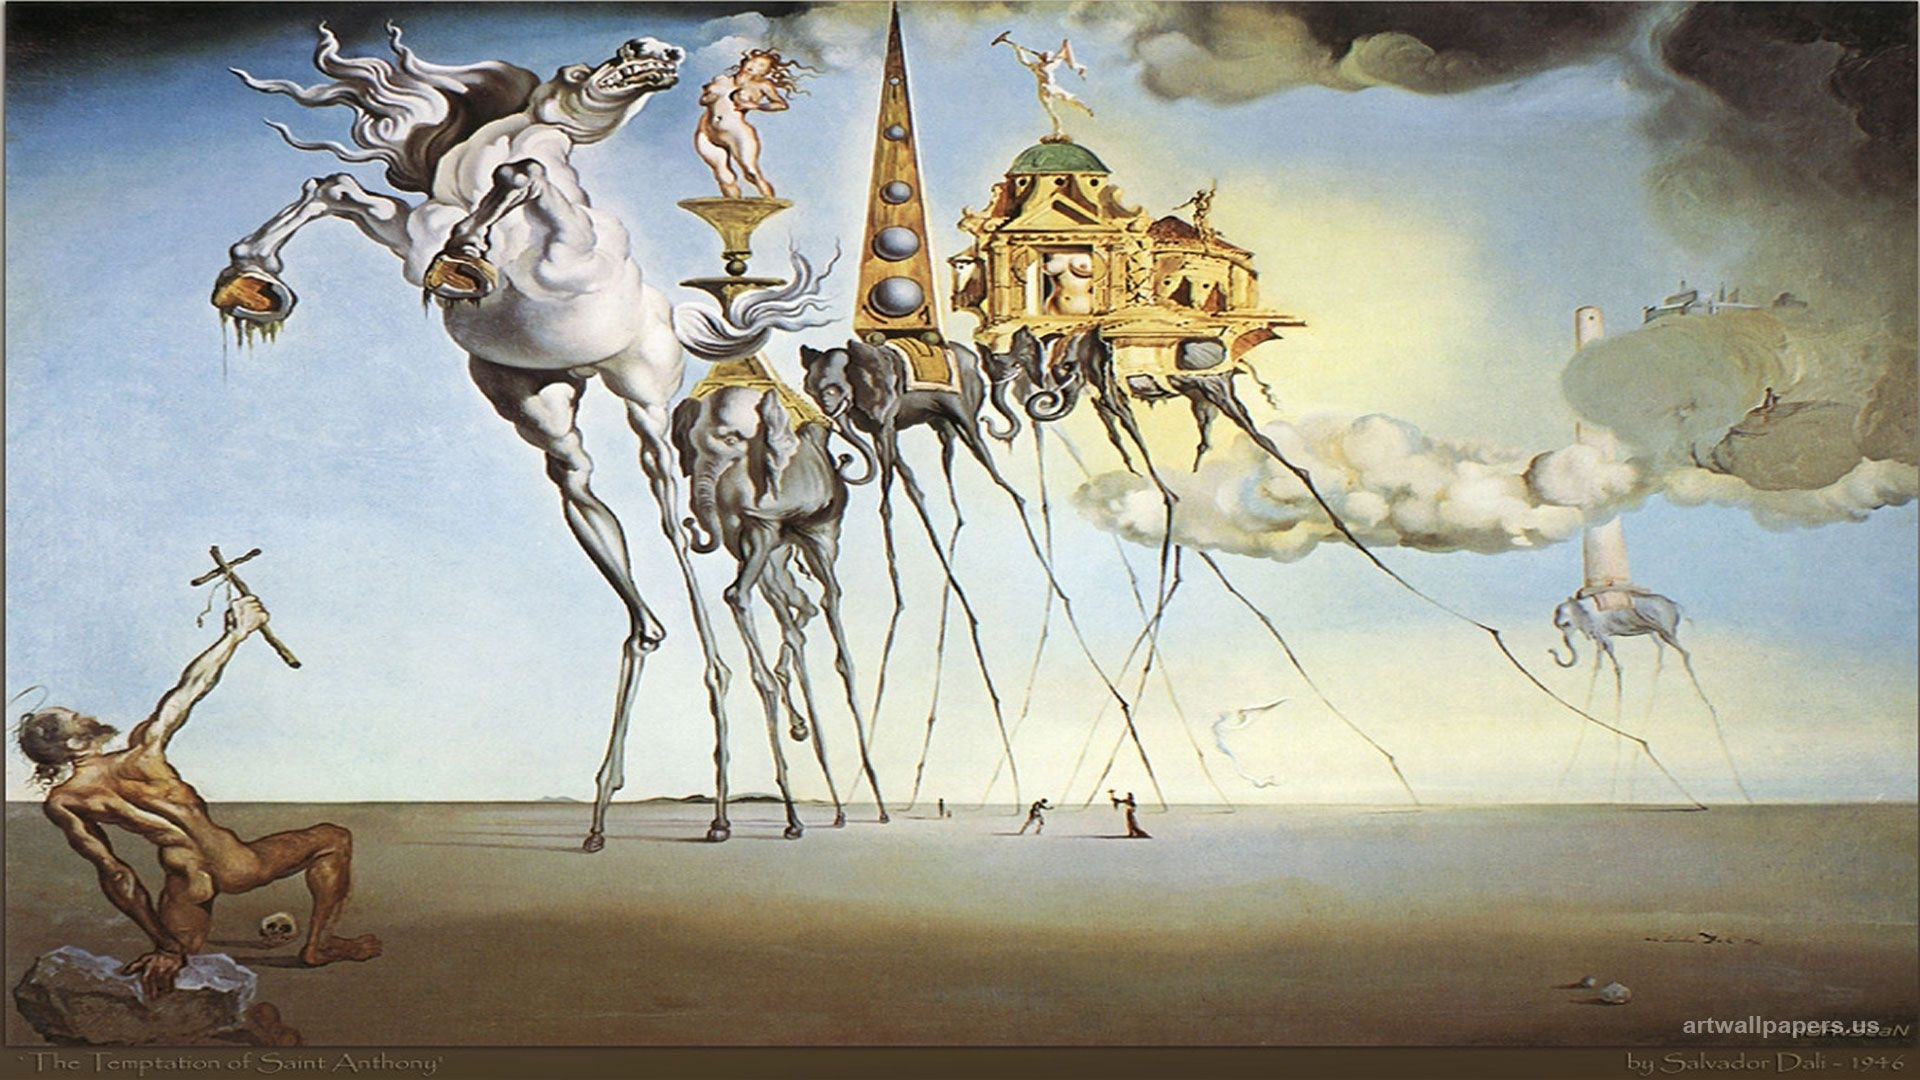 dali paintings | 1600 x 1200 . 1680 x 1050 . full hd wallpaper